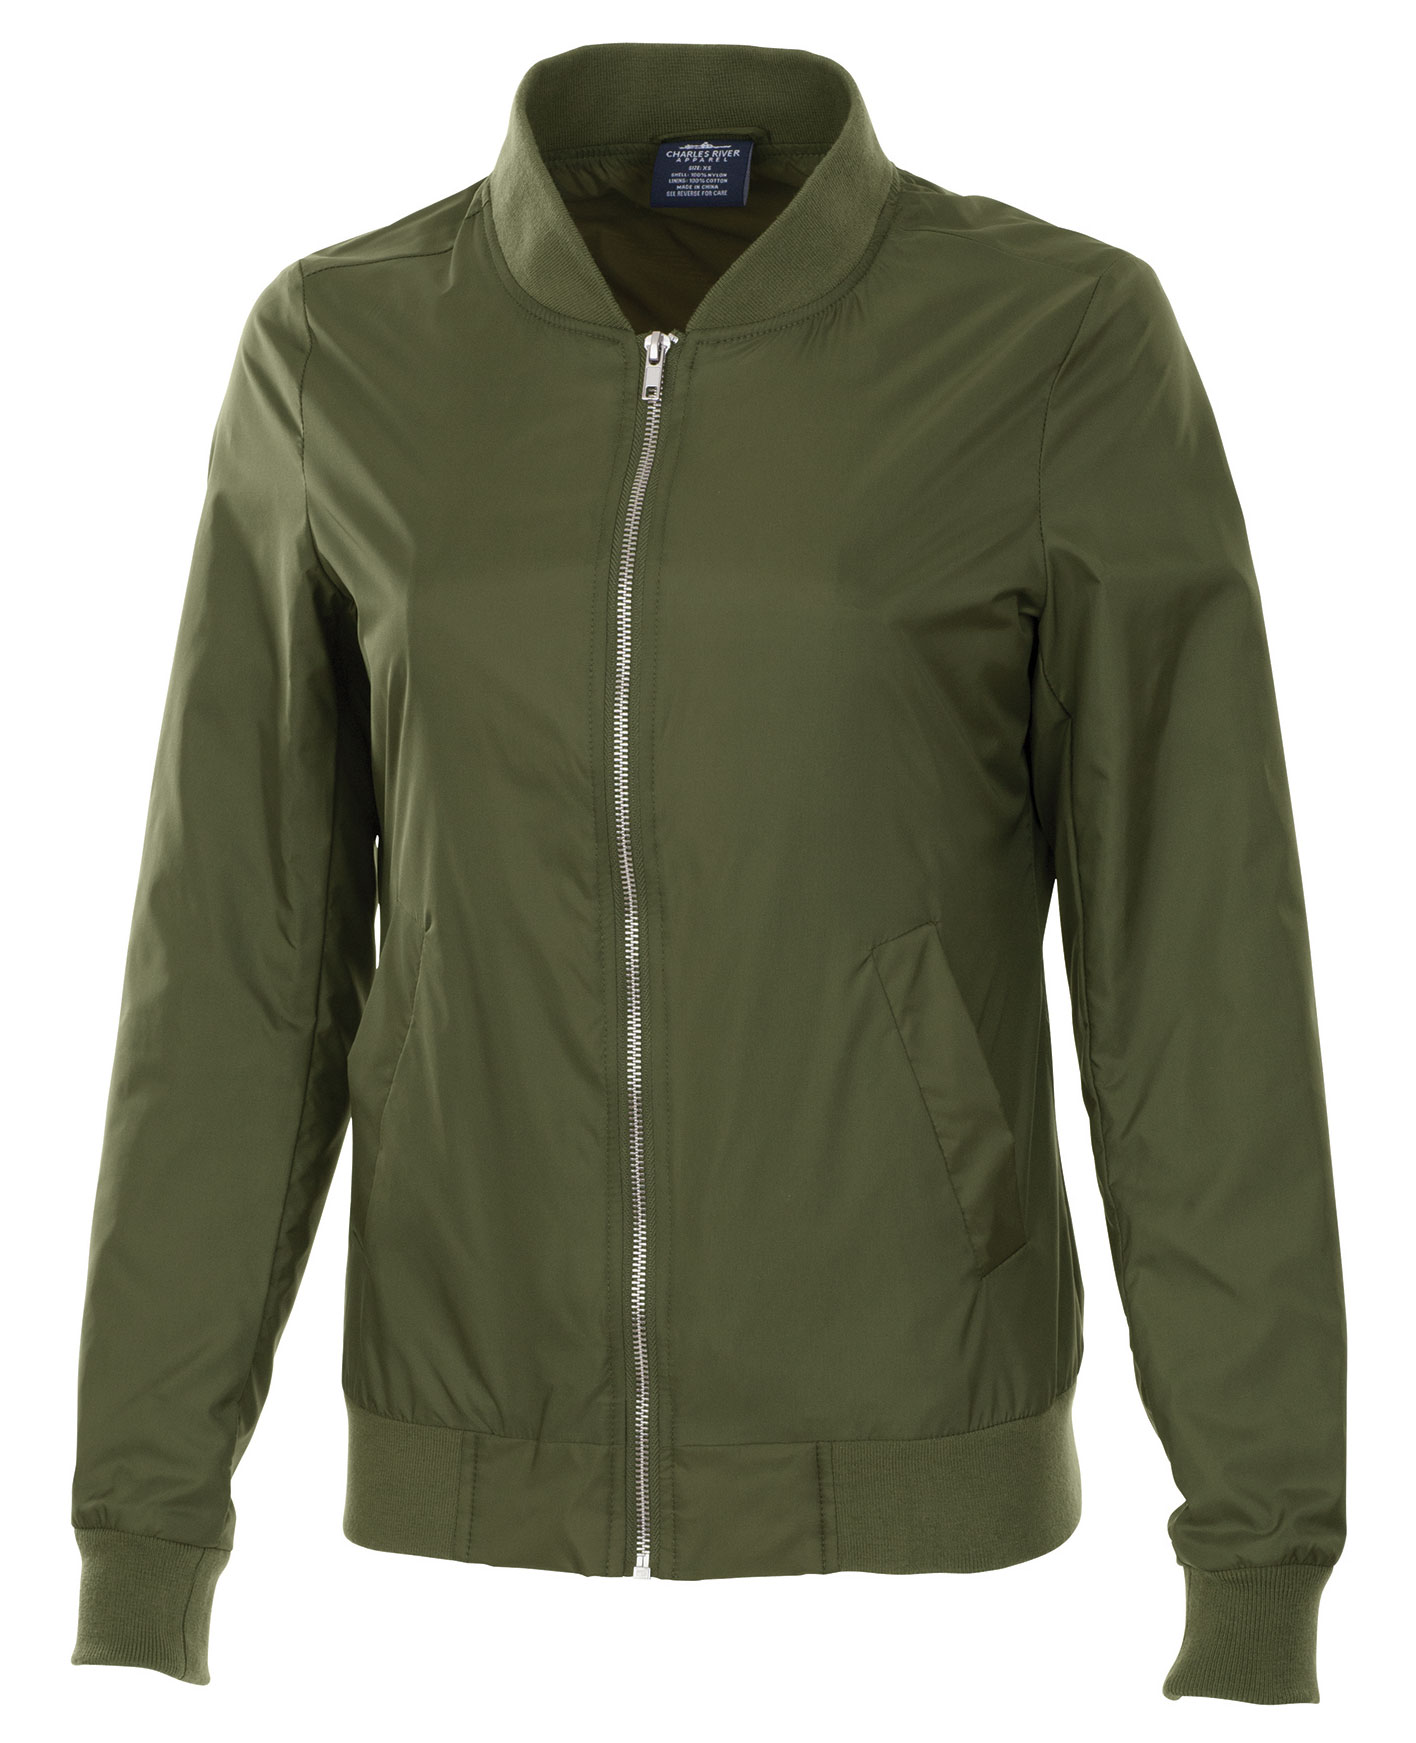 Womens Boston Flight Jacket by Charles River